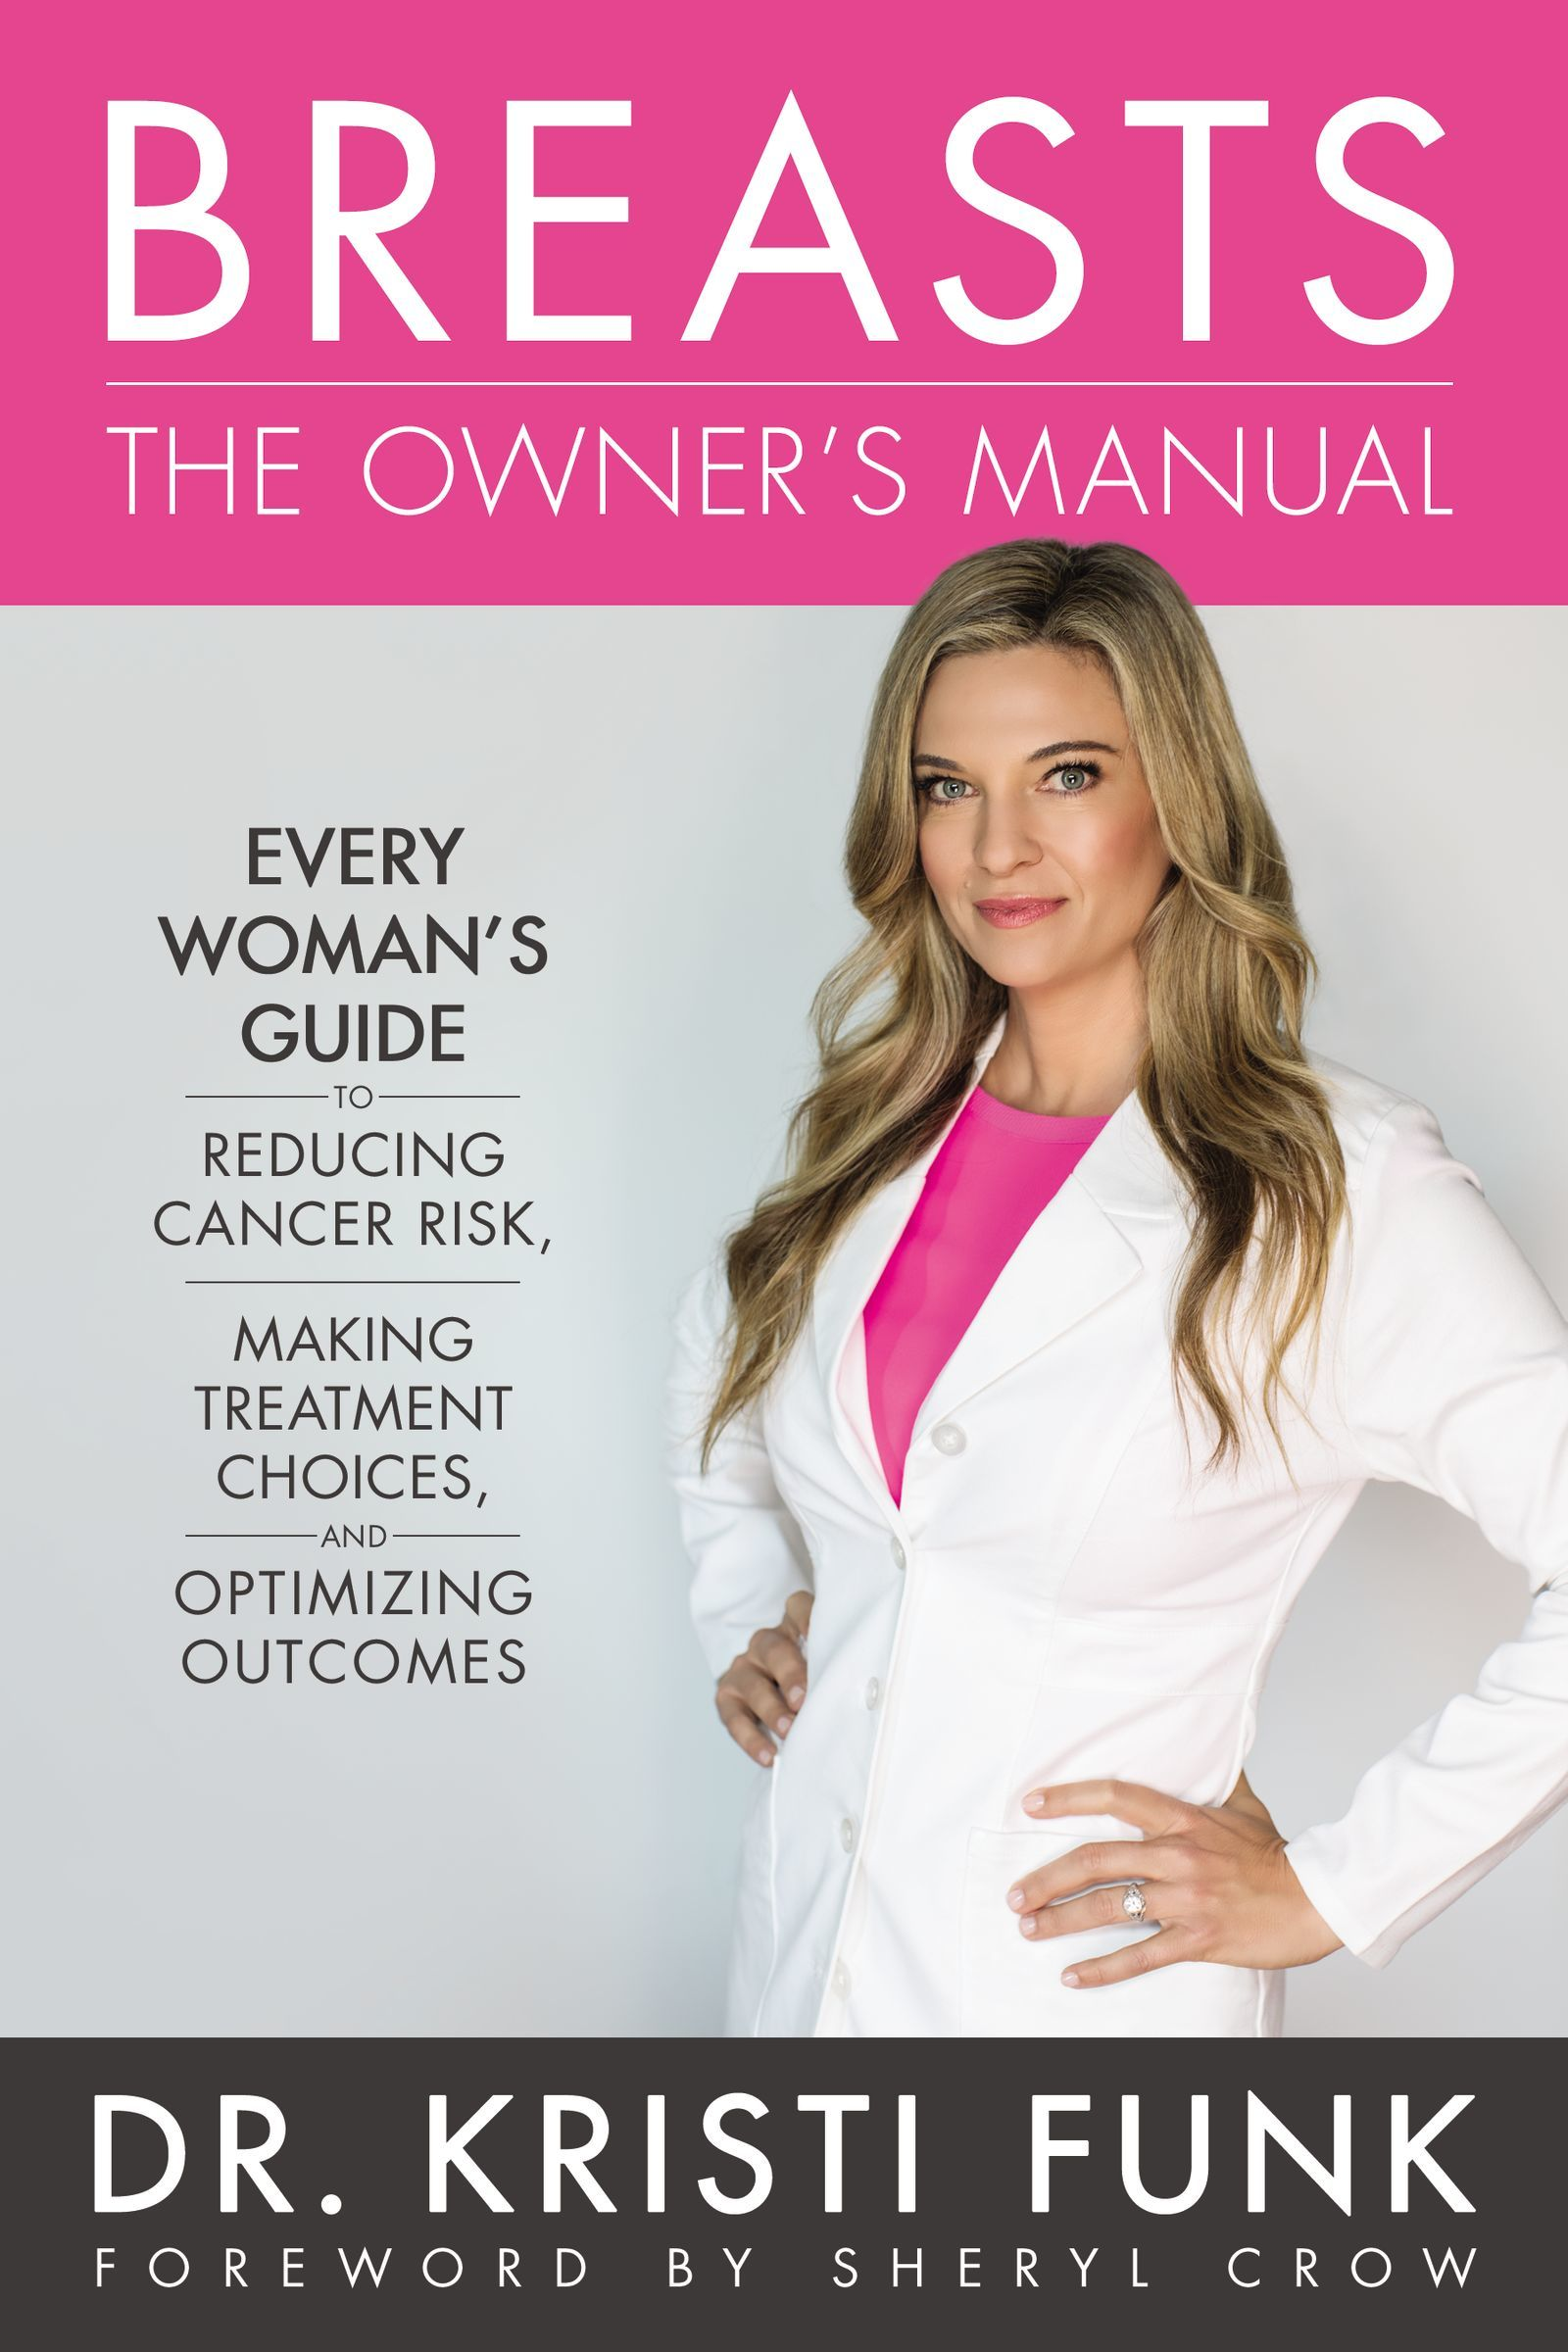 Breasts The Owner's Manual Every Woman's Guide to Reducing Cancer Risk, Making Treatment Choices, and Optimizing Outcomes